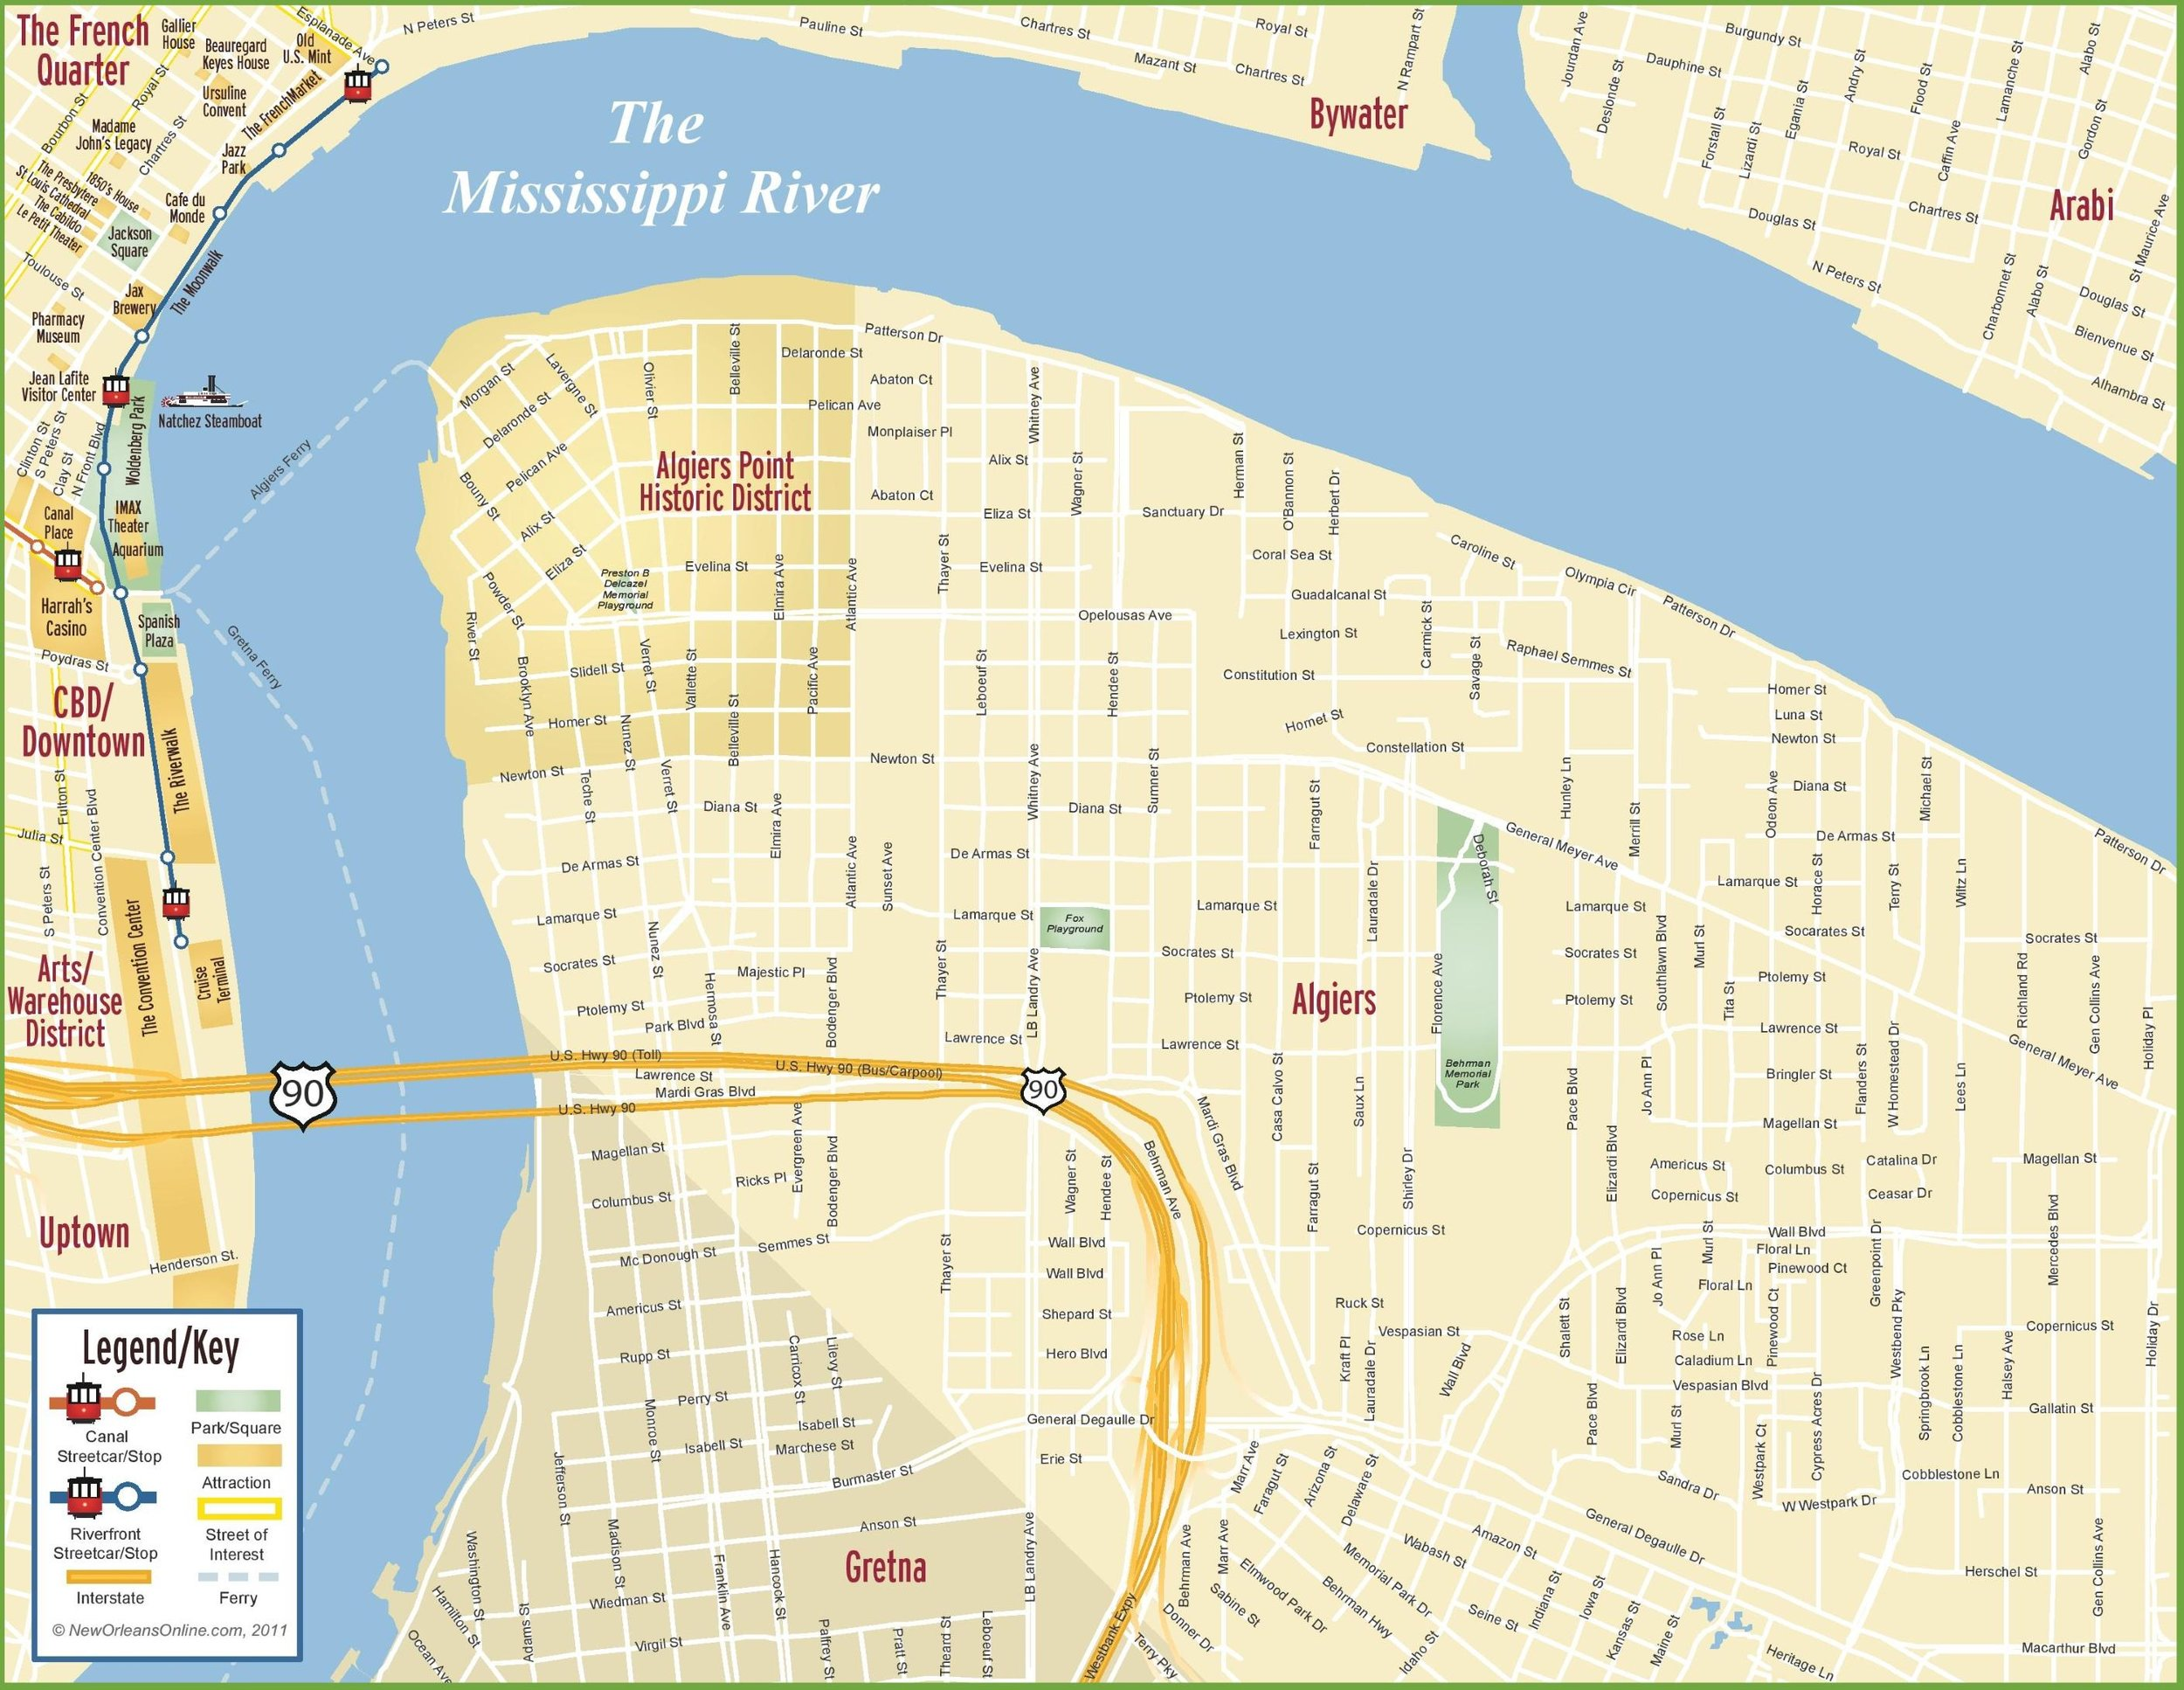 map-of-algiers-point-new-orleans.jpg